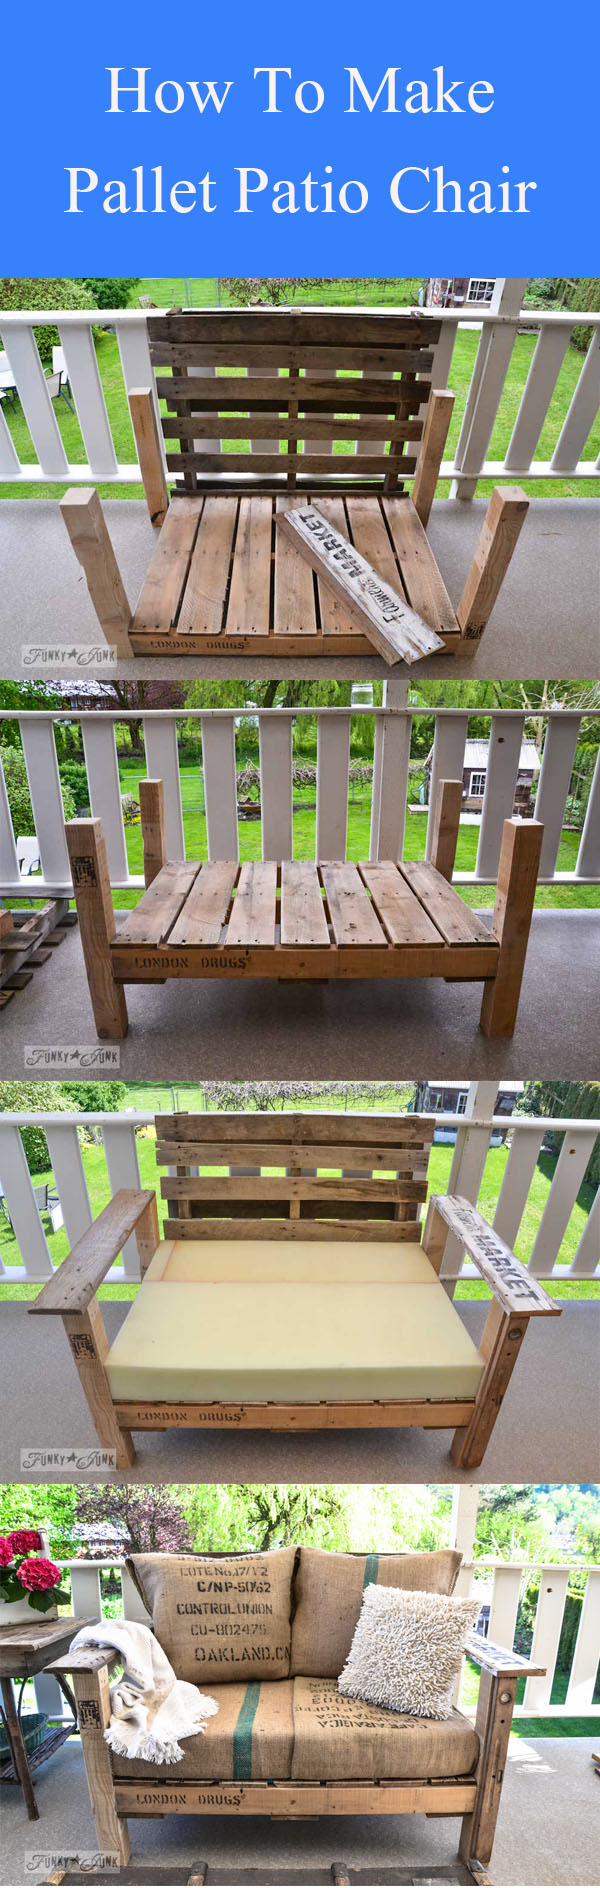 DIY Pallet Patio Chair